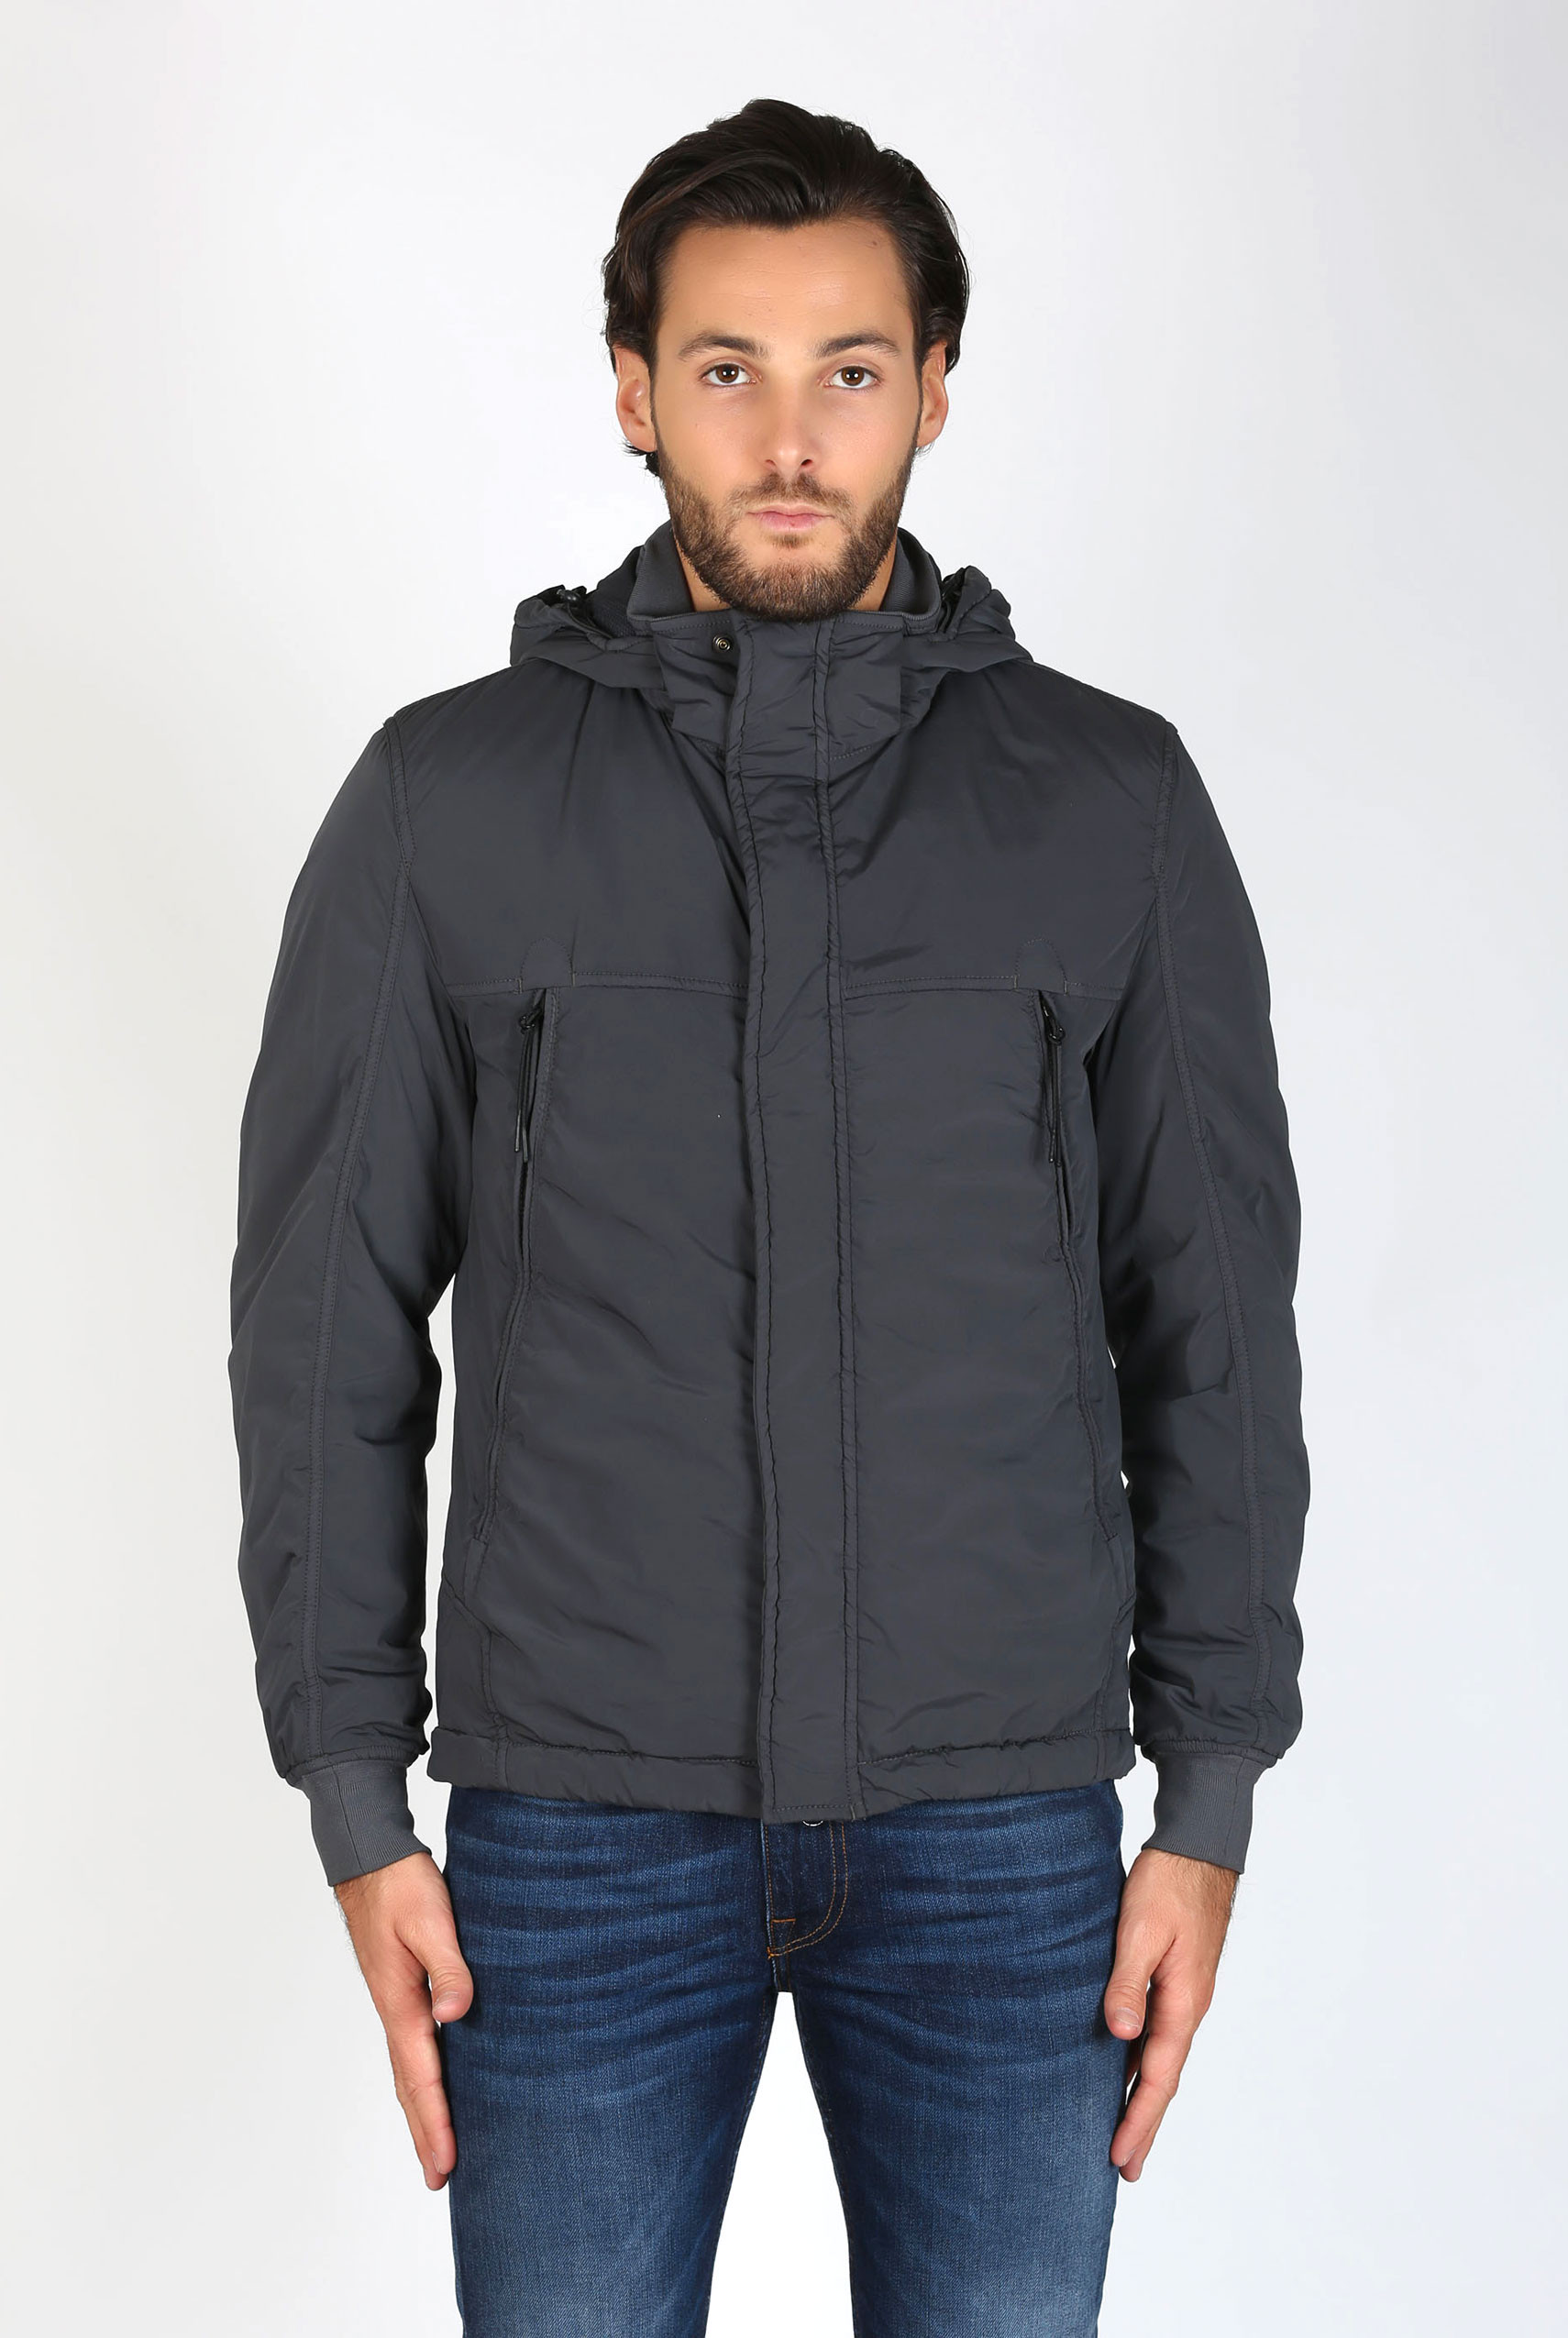 BLOUSON CP COMPANY GRIS GOGGLE JACKET 03CMOW002A001020G-968